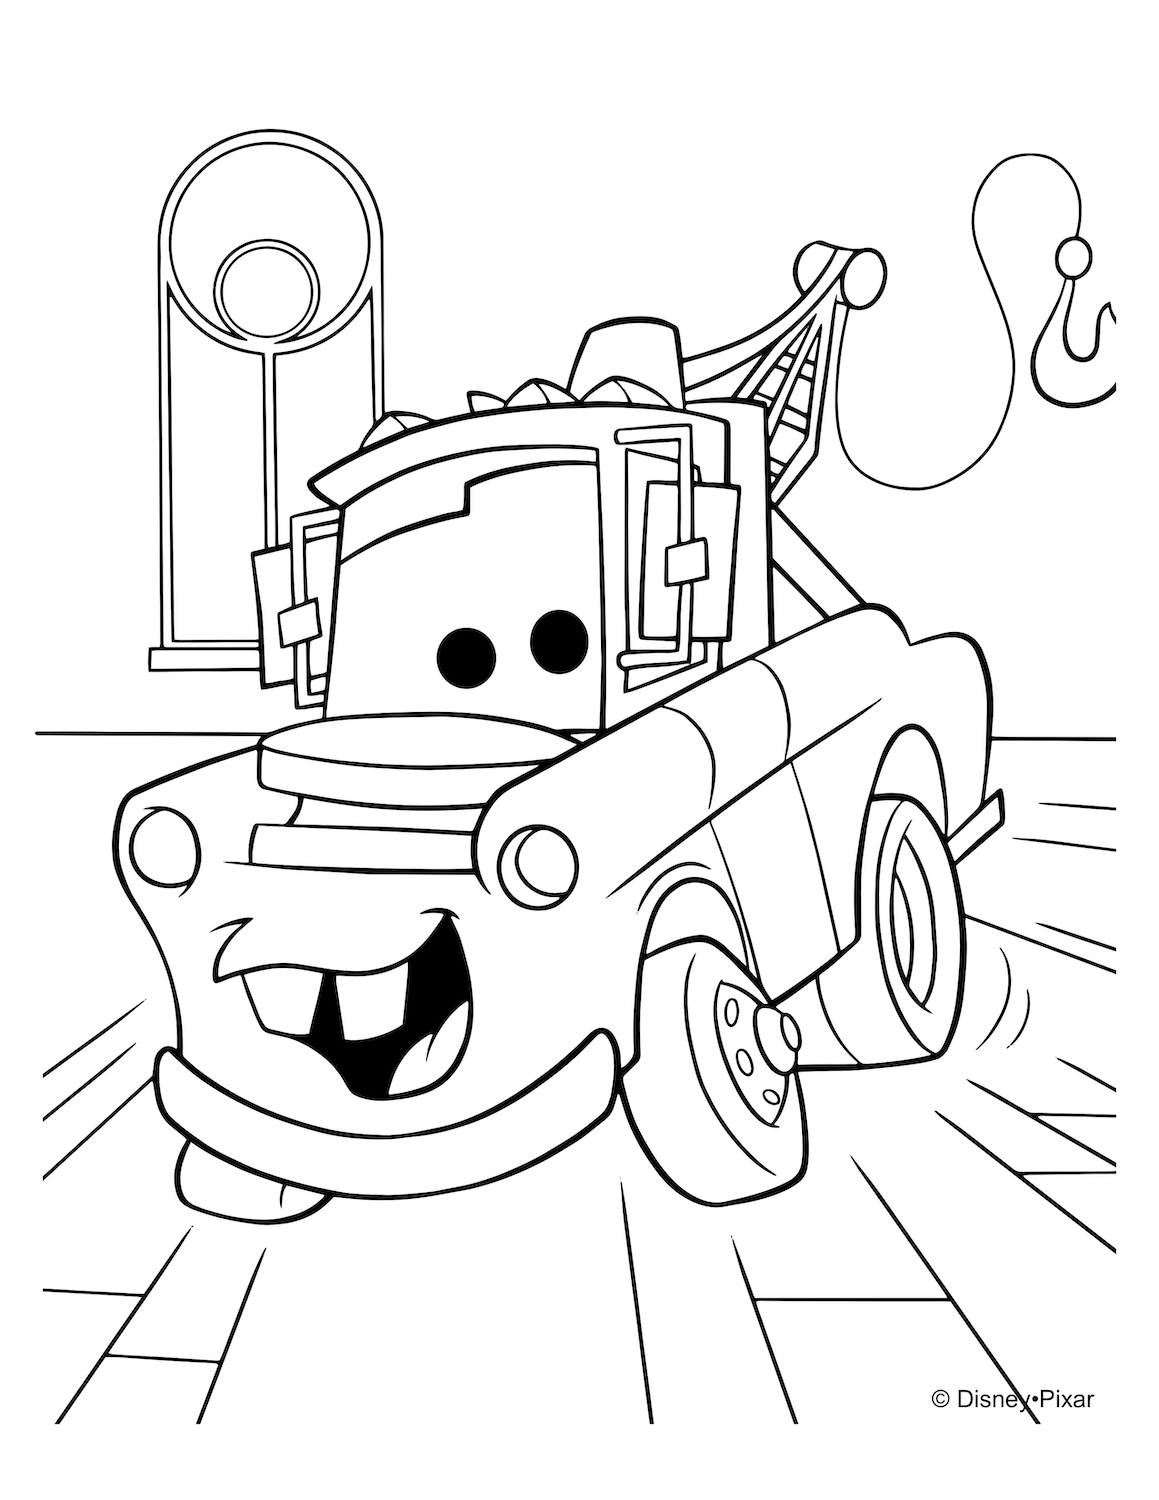 Free Disney Cars Coloring Pages Mater At Kidspartywoks Com In 2020 Cars Coloring Pages Truck Coloring Pages Race Car Coloring Pages